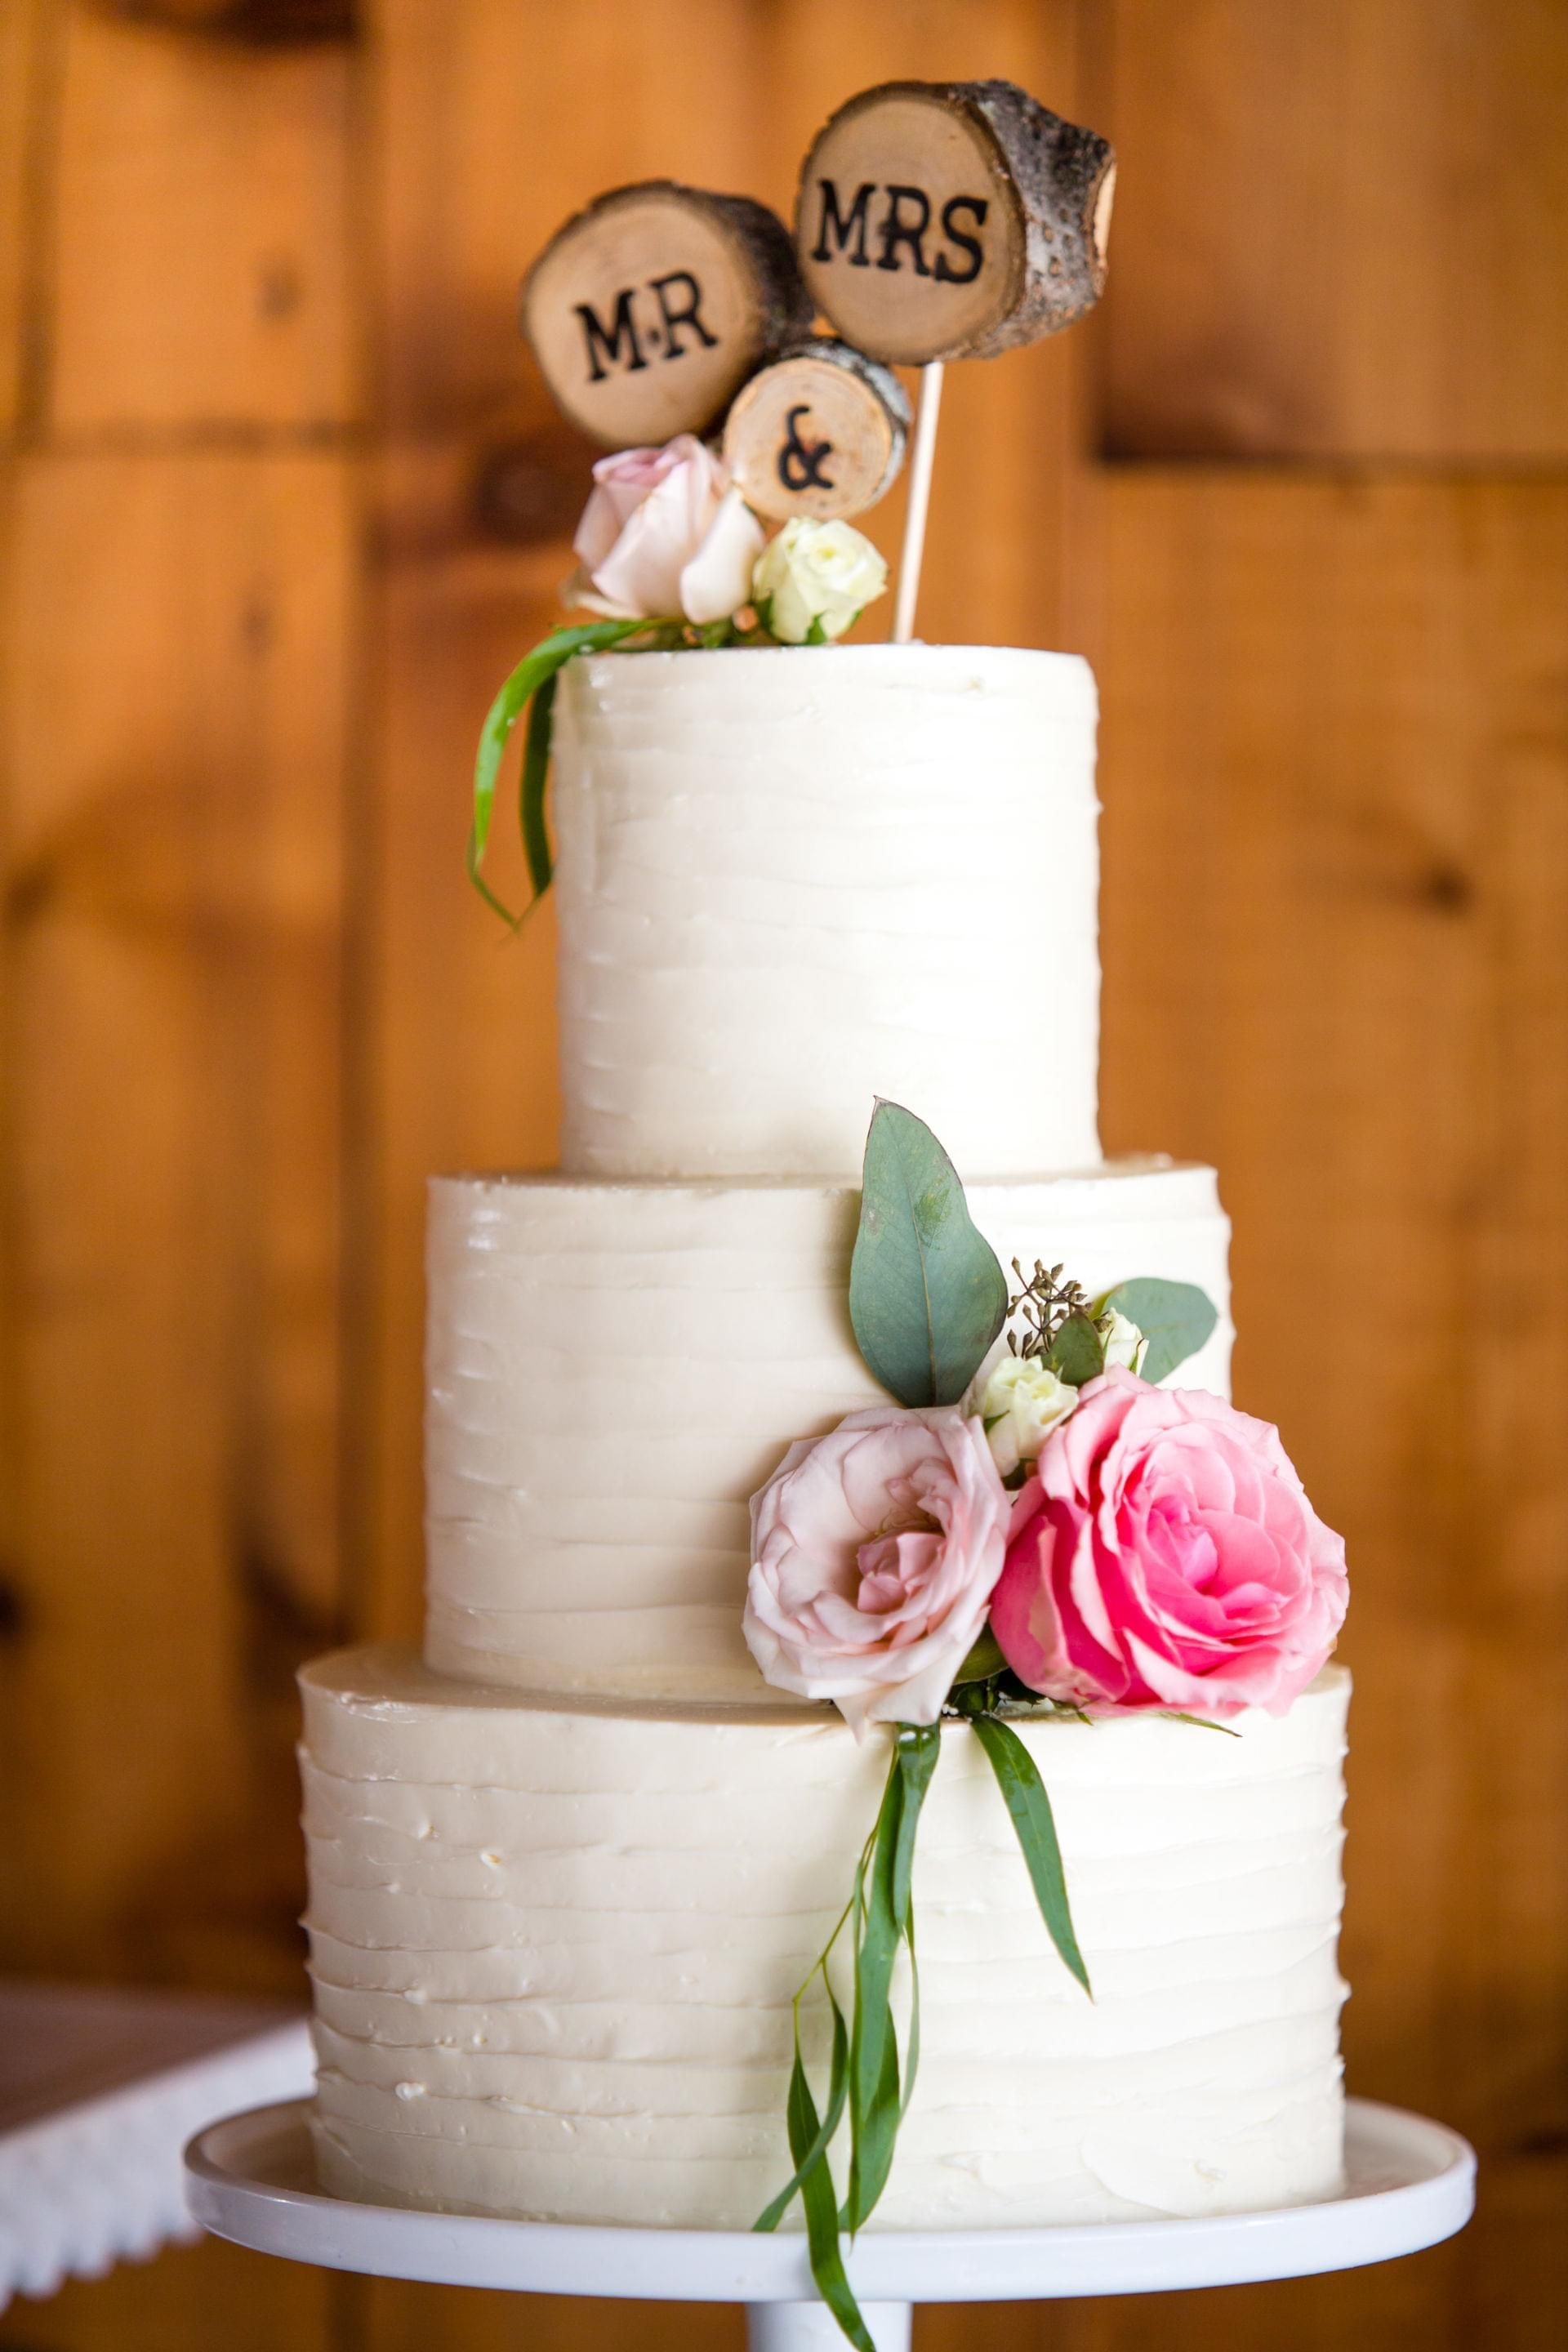 Rustic Mr Mrs Wooden Cake Topper White Wedding Cake Pink Florals M Magee Photography Wedding Cake Toppers Cool Wedding Cakes White Wedding Cakes